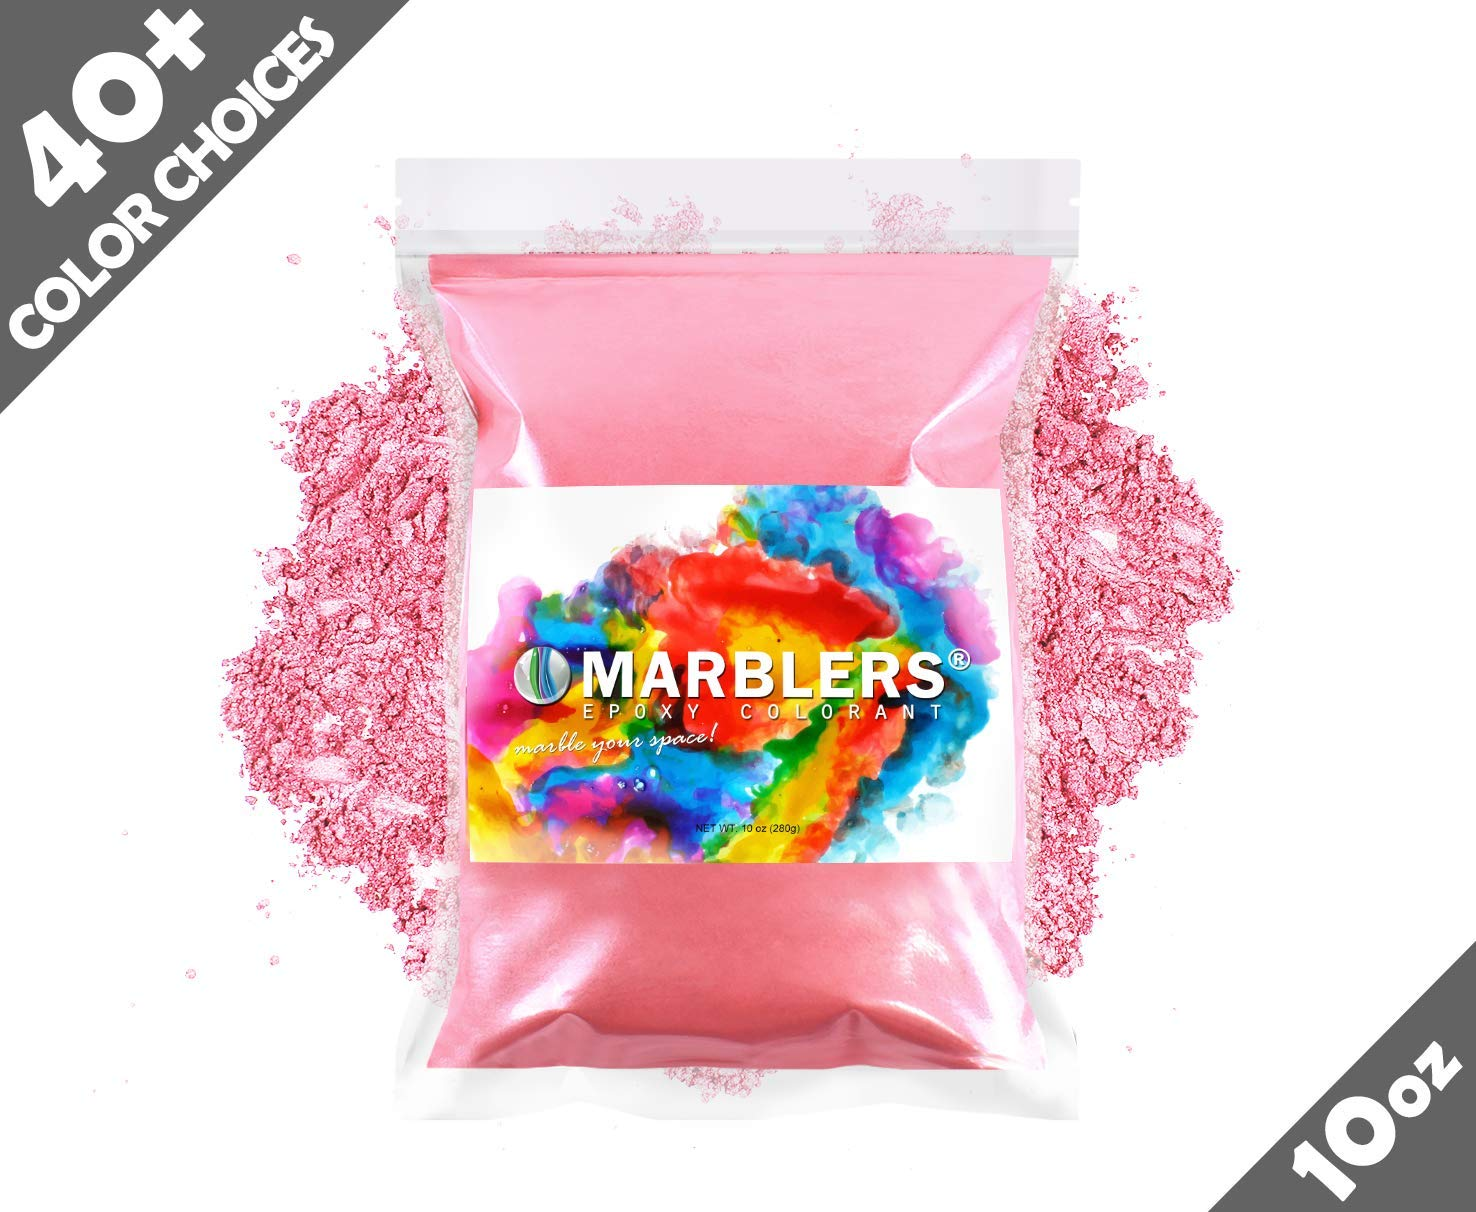 Marblers Powder Colorant 10oz (283g) [Pink]   Pearlescent Pigment   Tint   Pure Mica Powder for Resin   Dye   Non-Toxic   Great for Epoxy, Soap, Nail Polish, Cosmetics and Bath Bombs